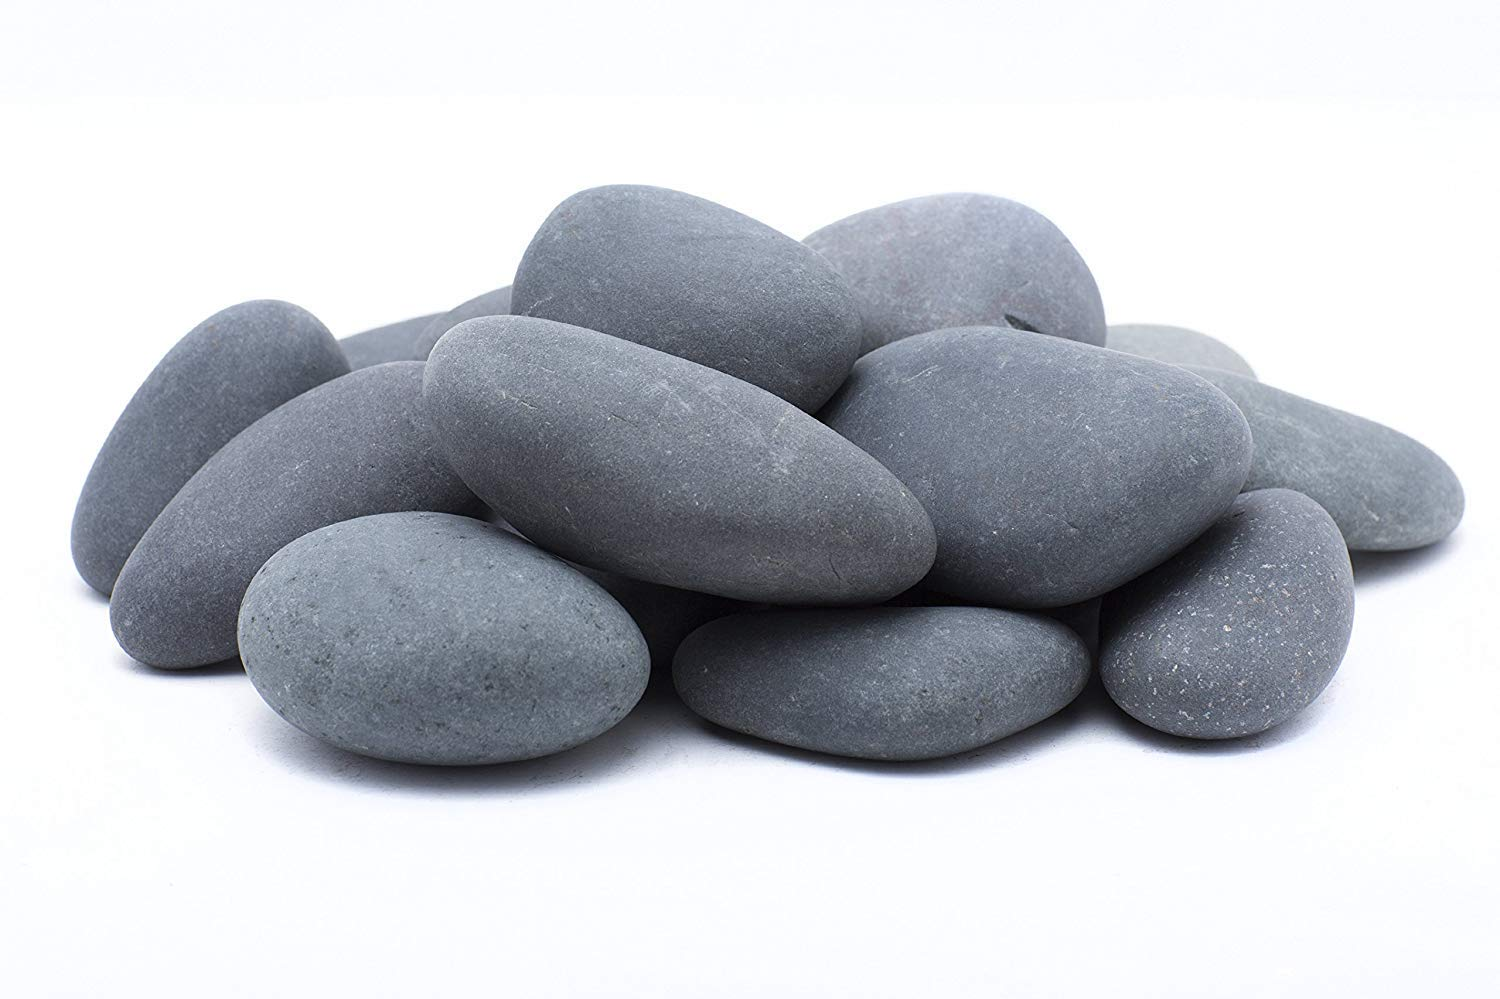 LF Inc. 30 Lb. Premium Large Mexican Beach Pebbles 3-5 inches, Decor, Garden, Landscape